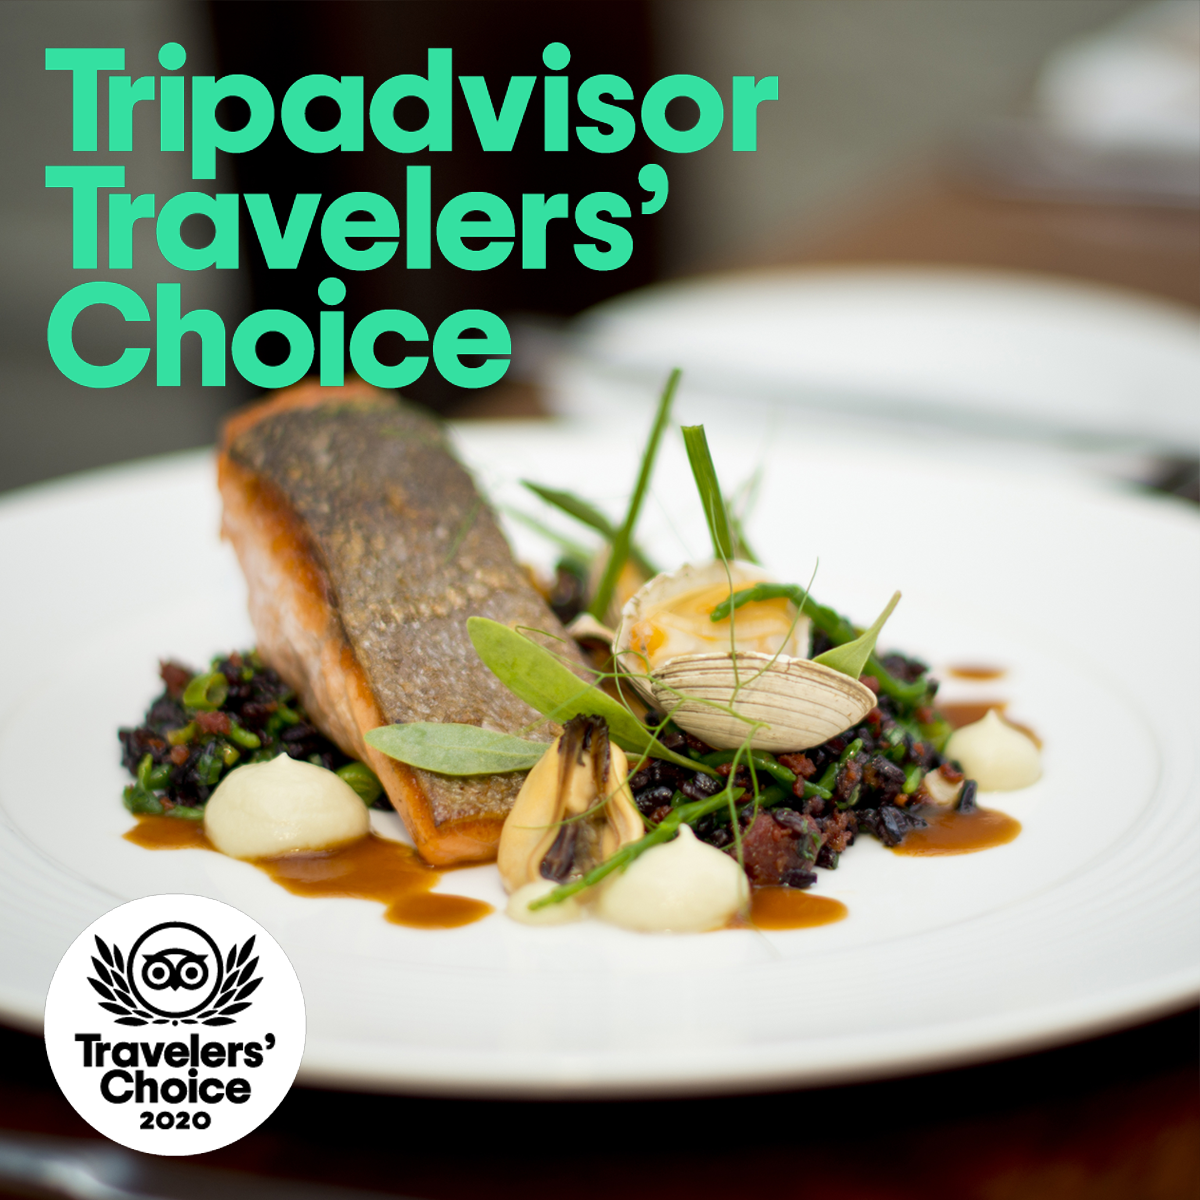 Thank you @tripadvisor for announcing that we are a Travellers' Choice Winner 2020!  This award based on the ratings, reviews and saves of global travellers, placing us in the top 10% of restaurants worldwide!  #ubiquitouschip #certificateofexcellence #guestreviewpic.twitter.com/MgcOBtVUGm